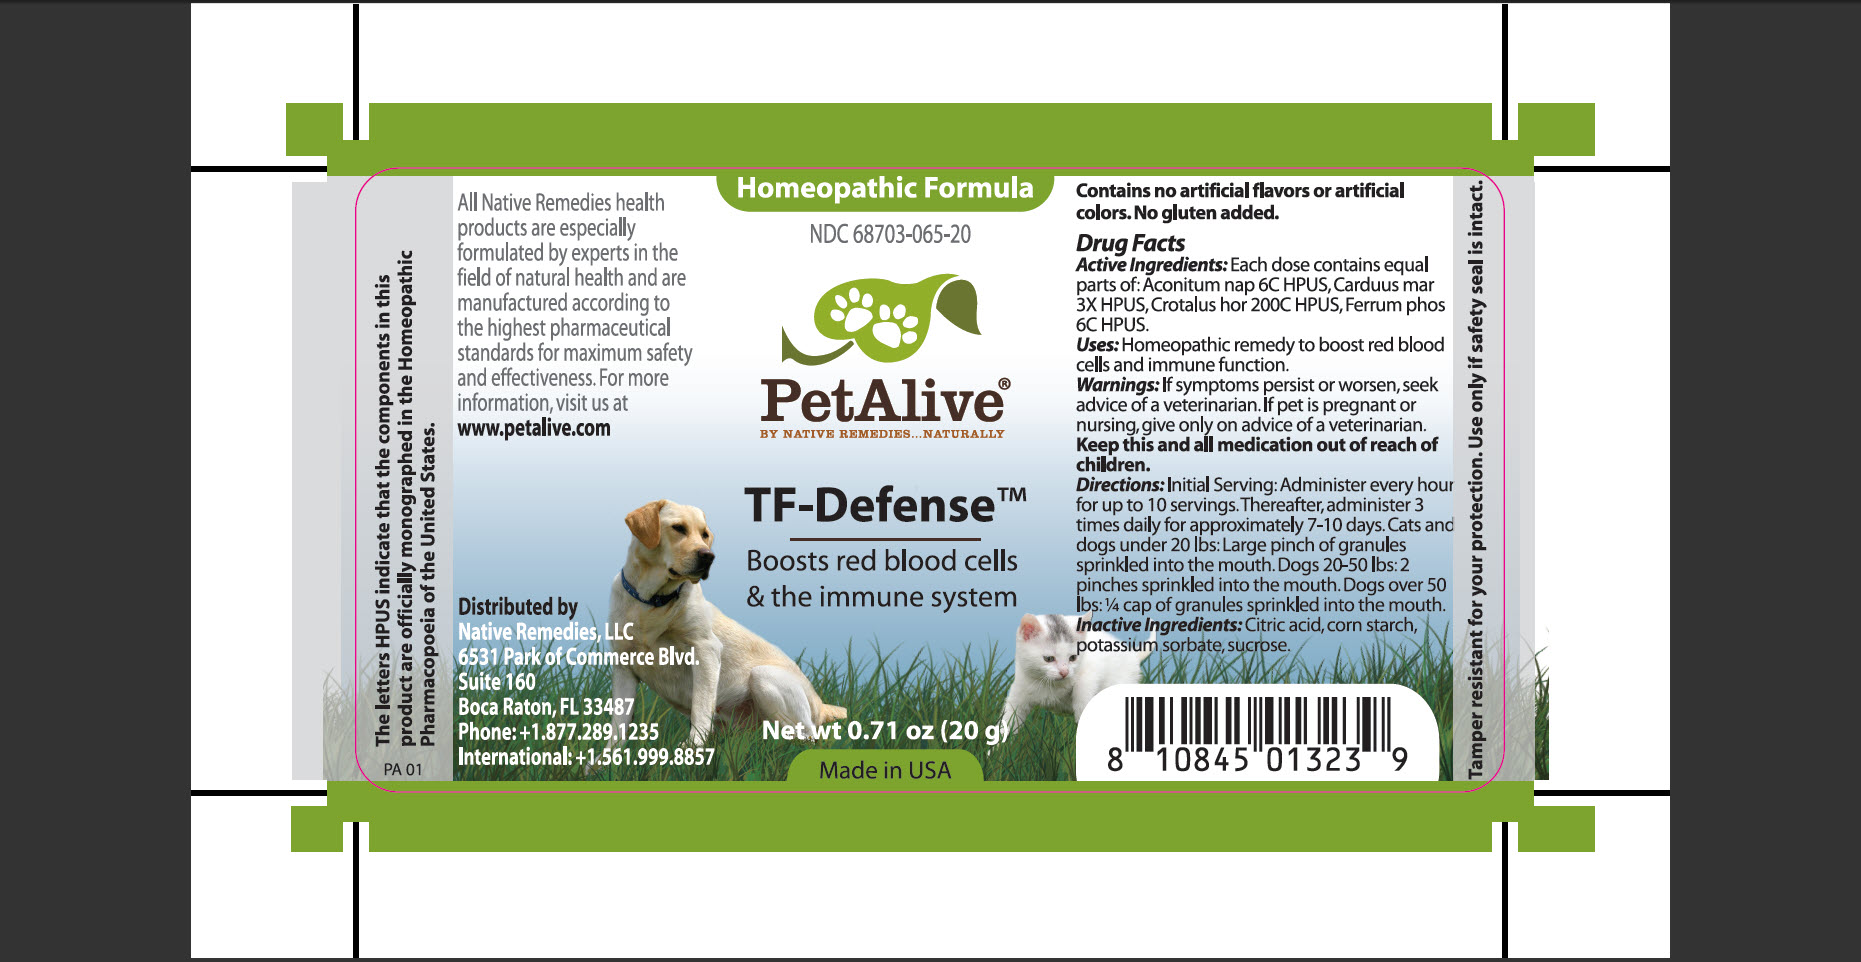 Petalive Tf-defense (Aconitum Nap, Carduus Mar, Crotalus Hor, Ferrum Phos) Granule [Native Remedies, Llc]